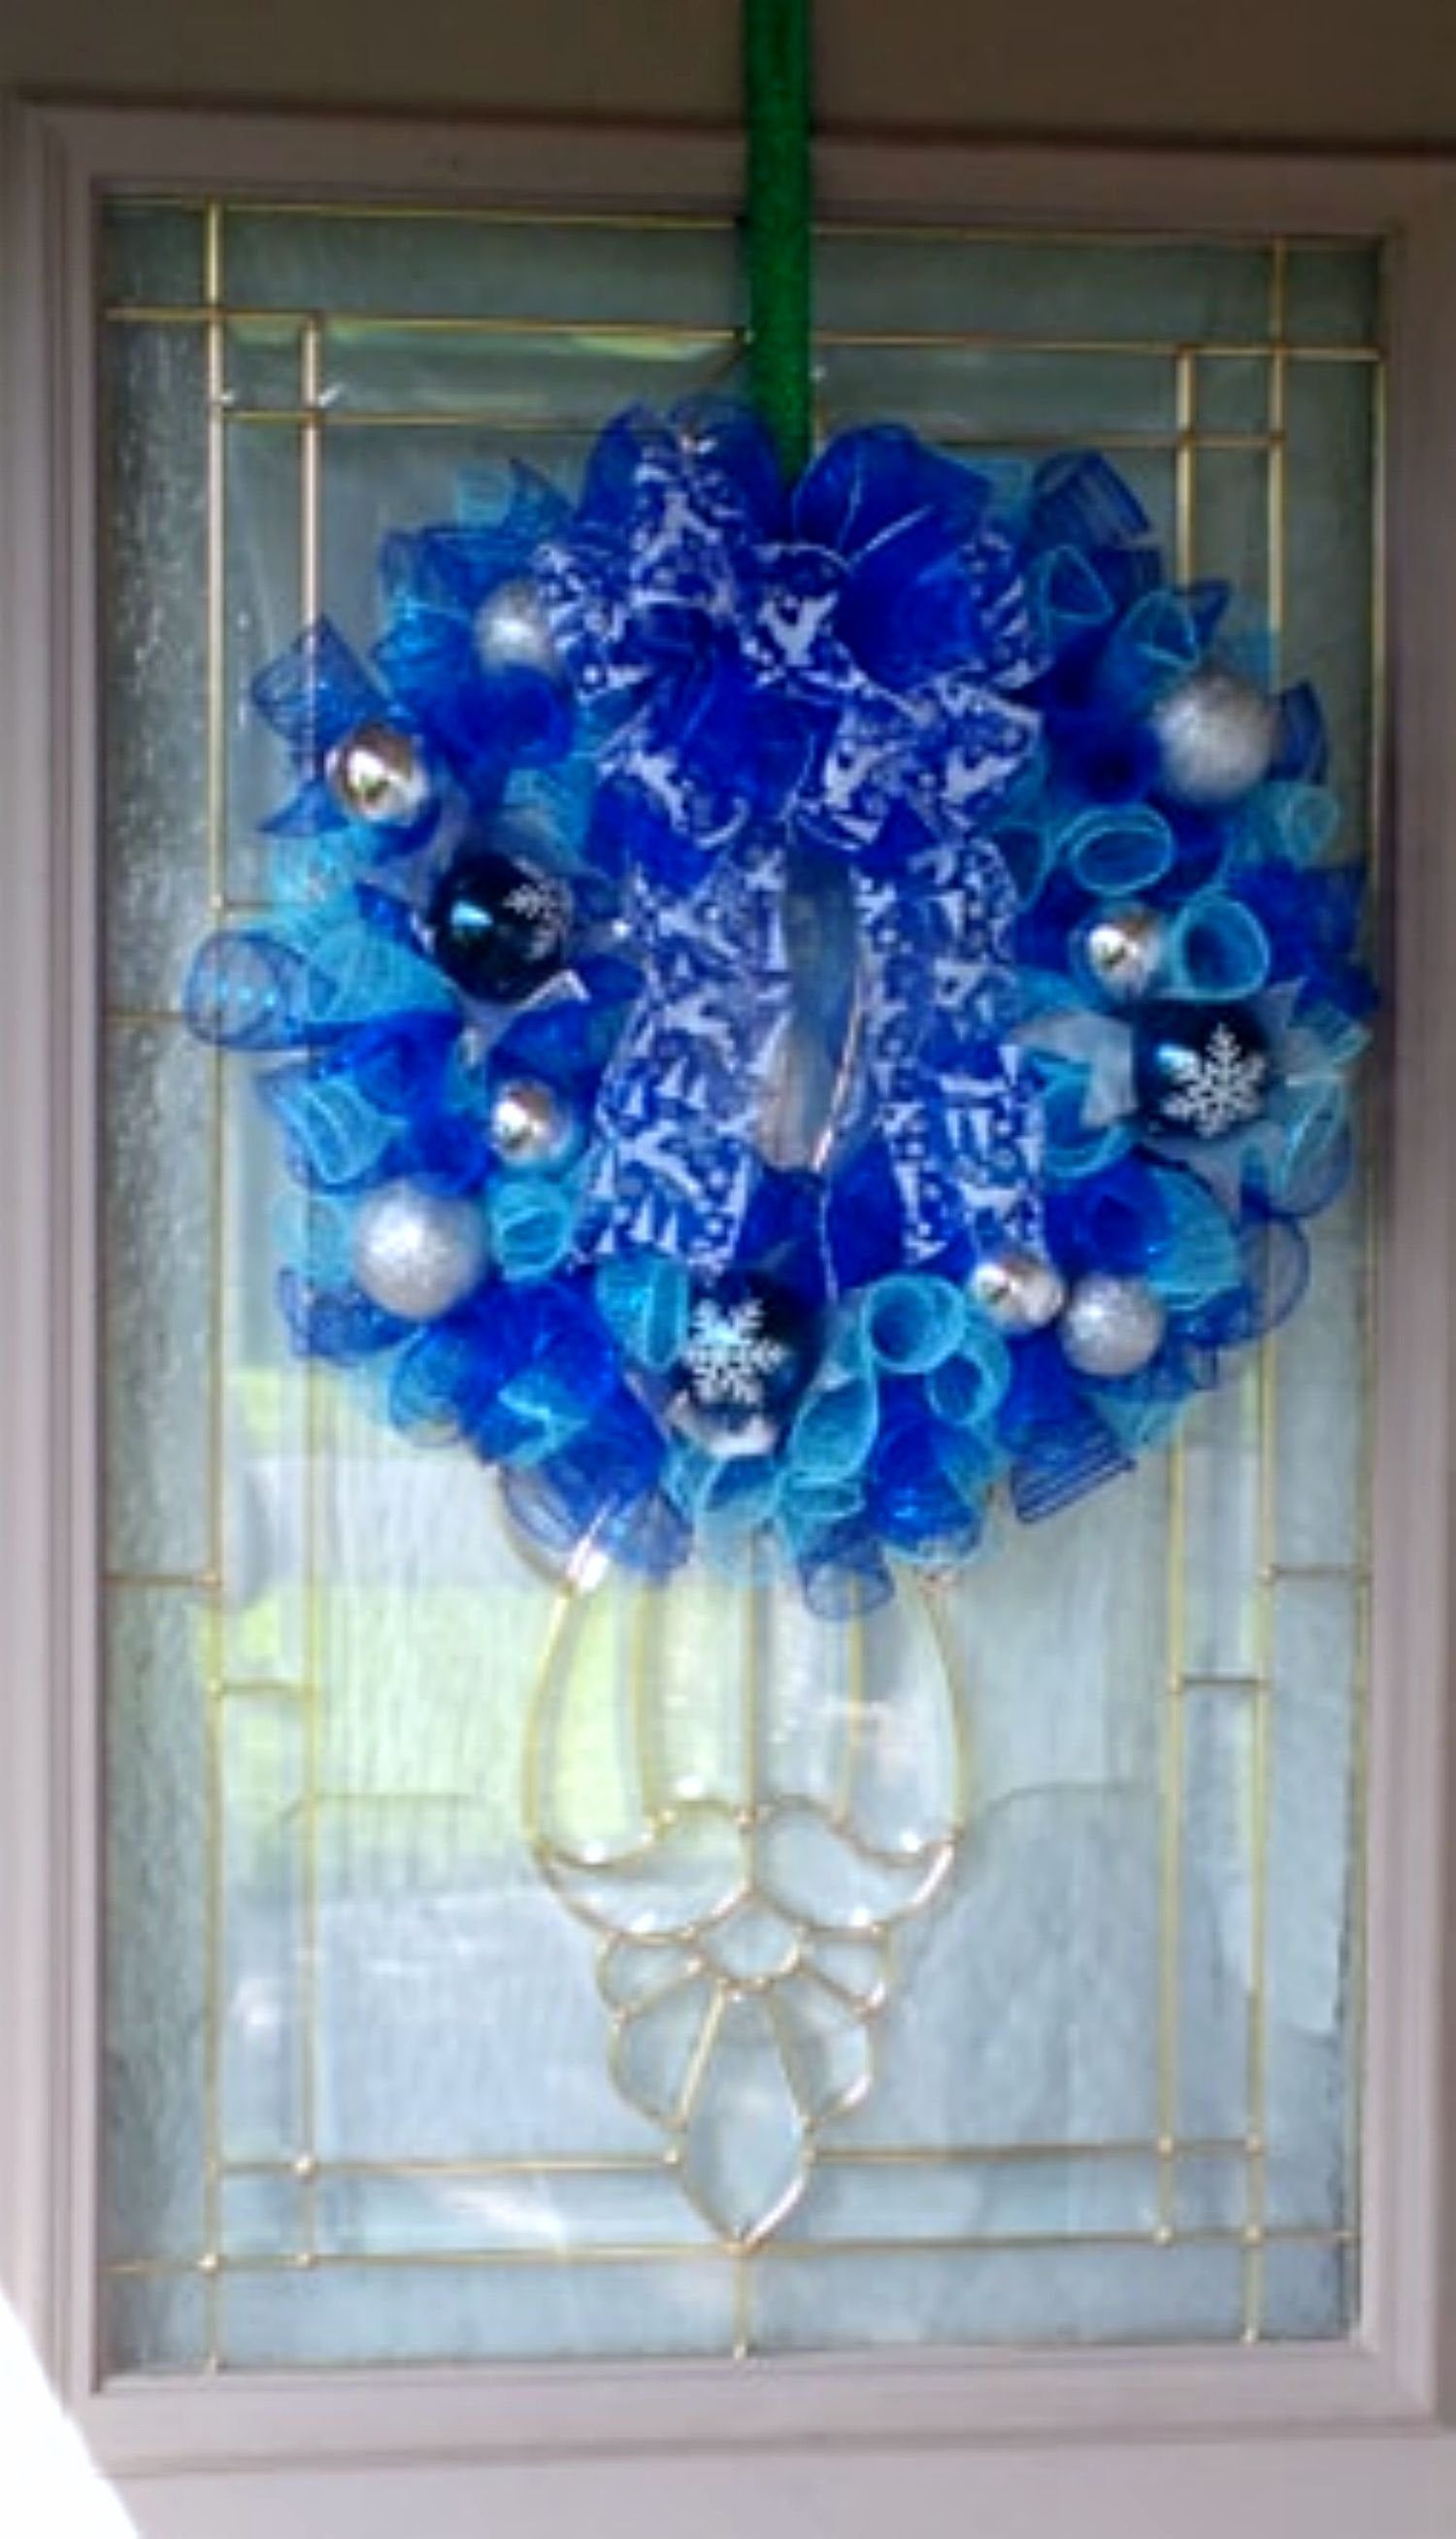 Blue Christmas Decorations For Sale  from i.pinimg.com